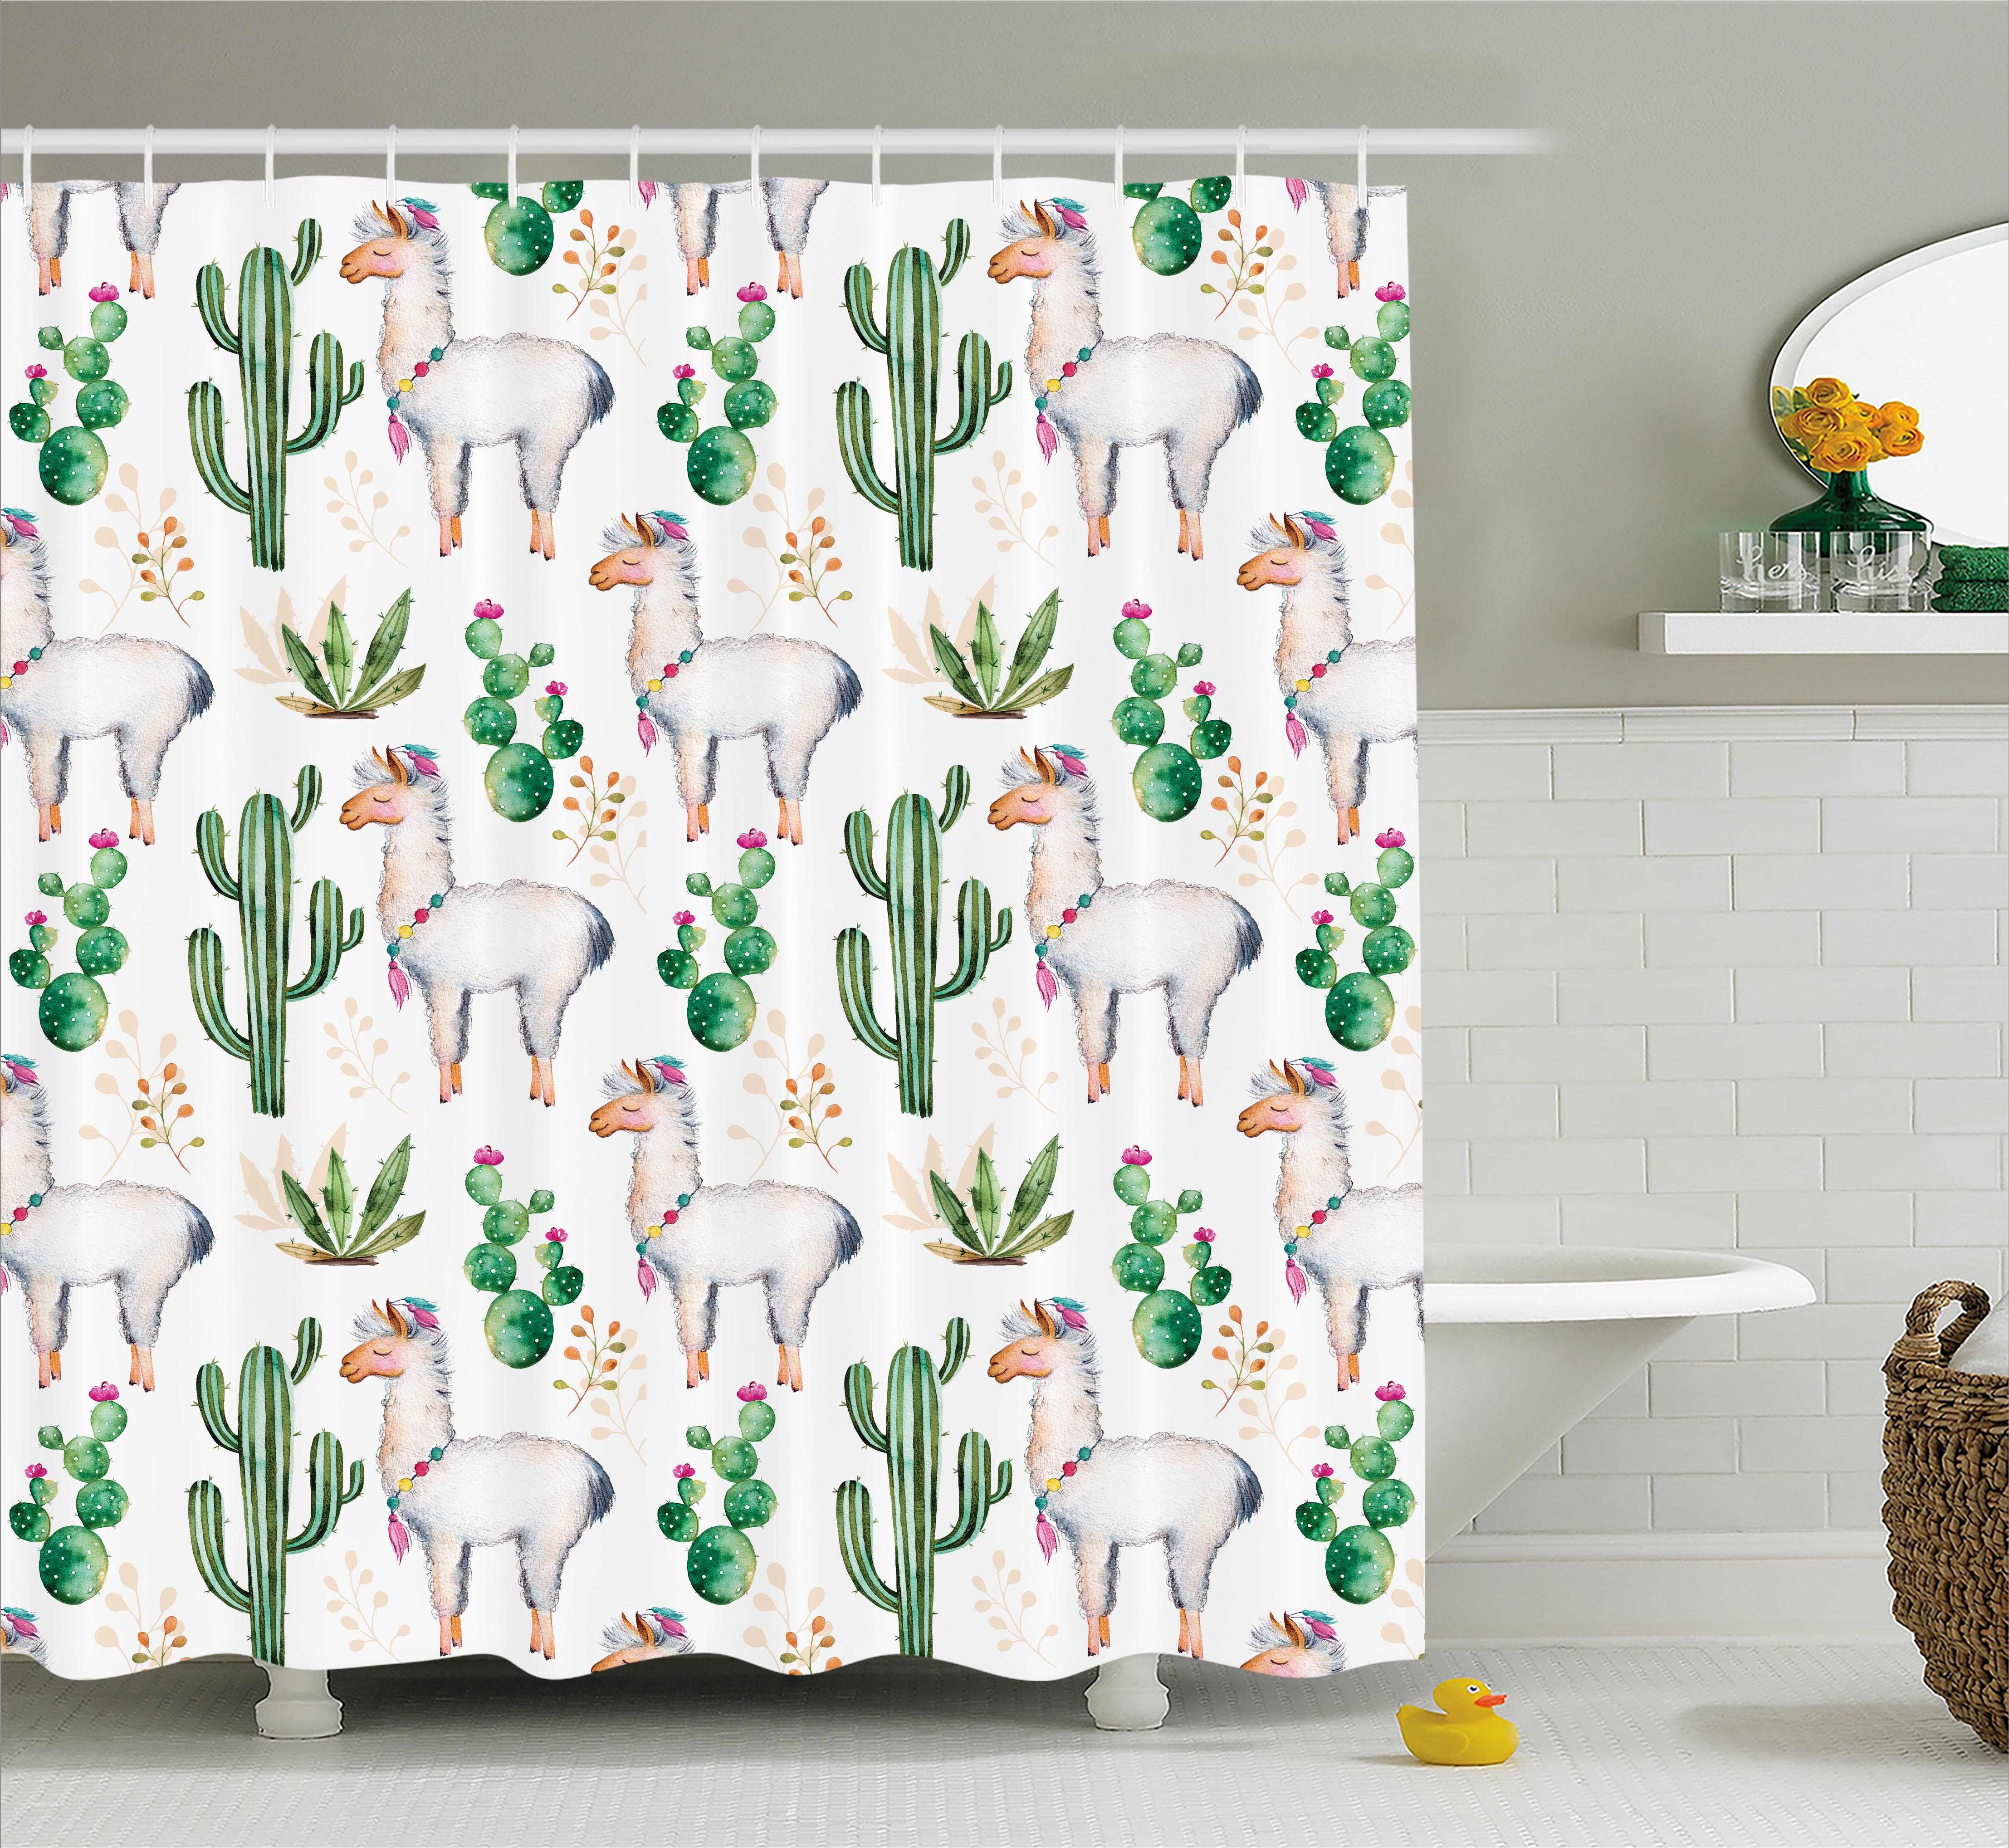 Superieur Cactus Shower Curtain, Hot South Desert Plant Cactus Pattern With Camel  Animal Modern Colored Image Print, Fabric Bathroom Set With Hooks,  Multicolor, ...